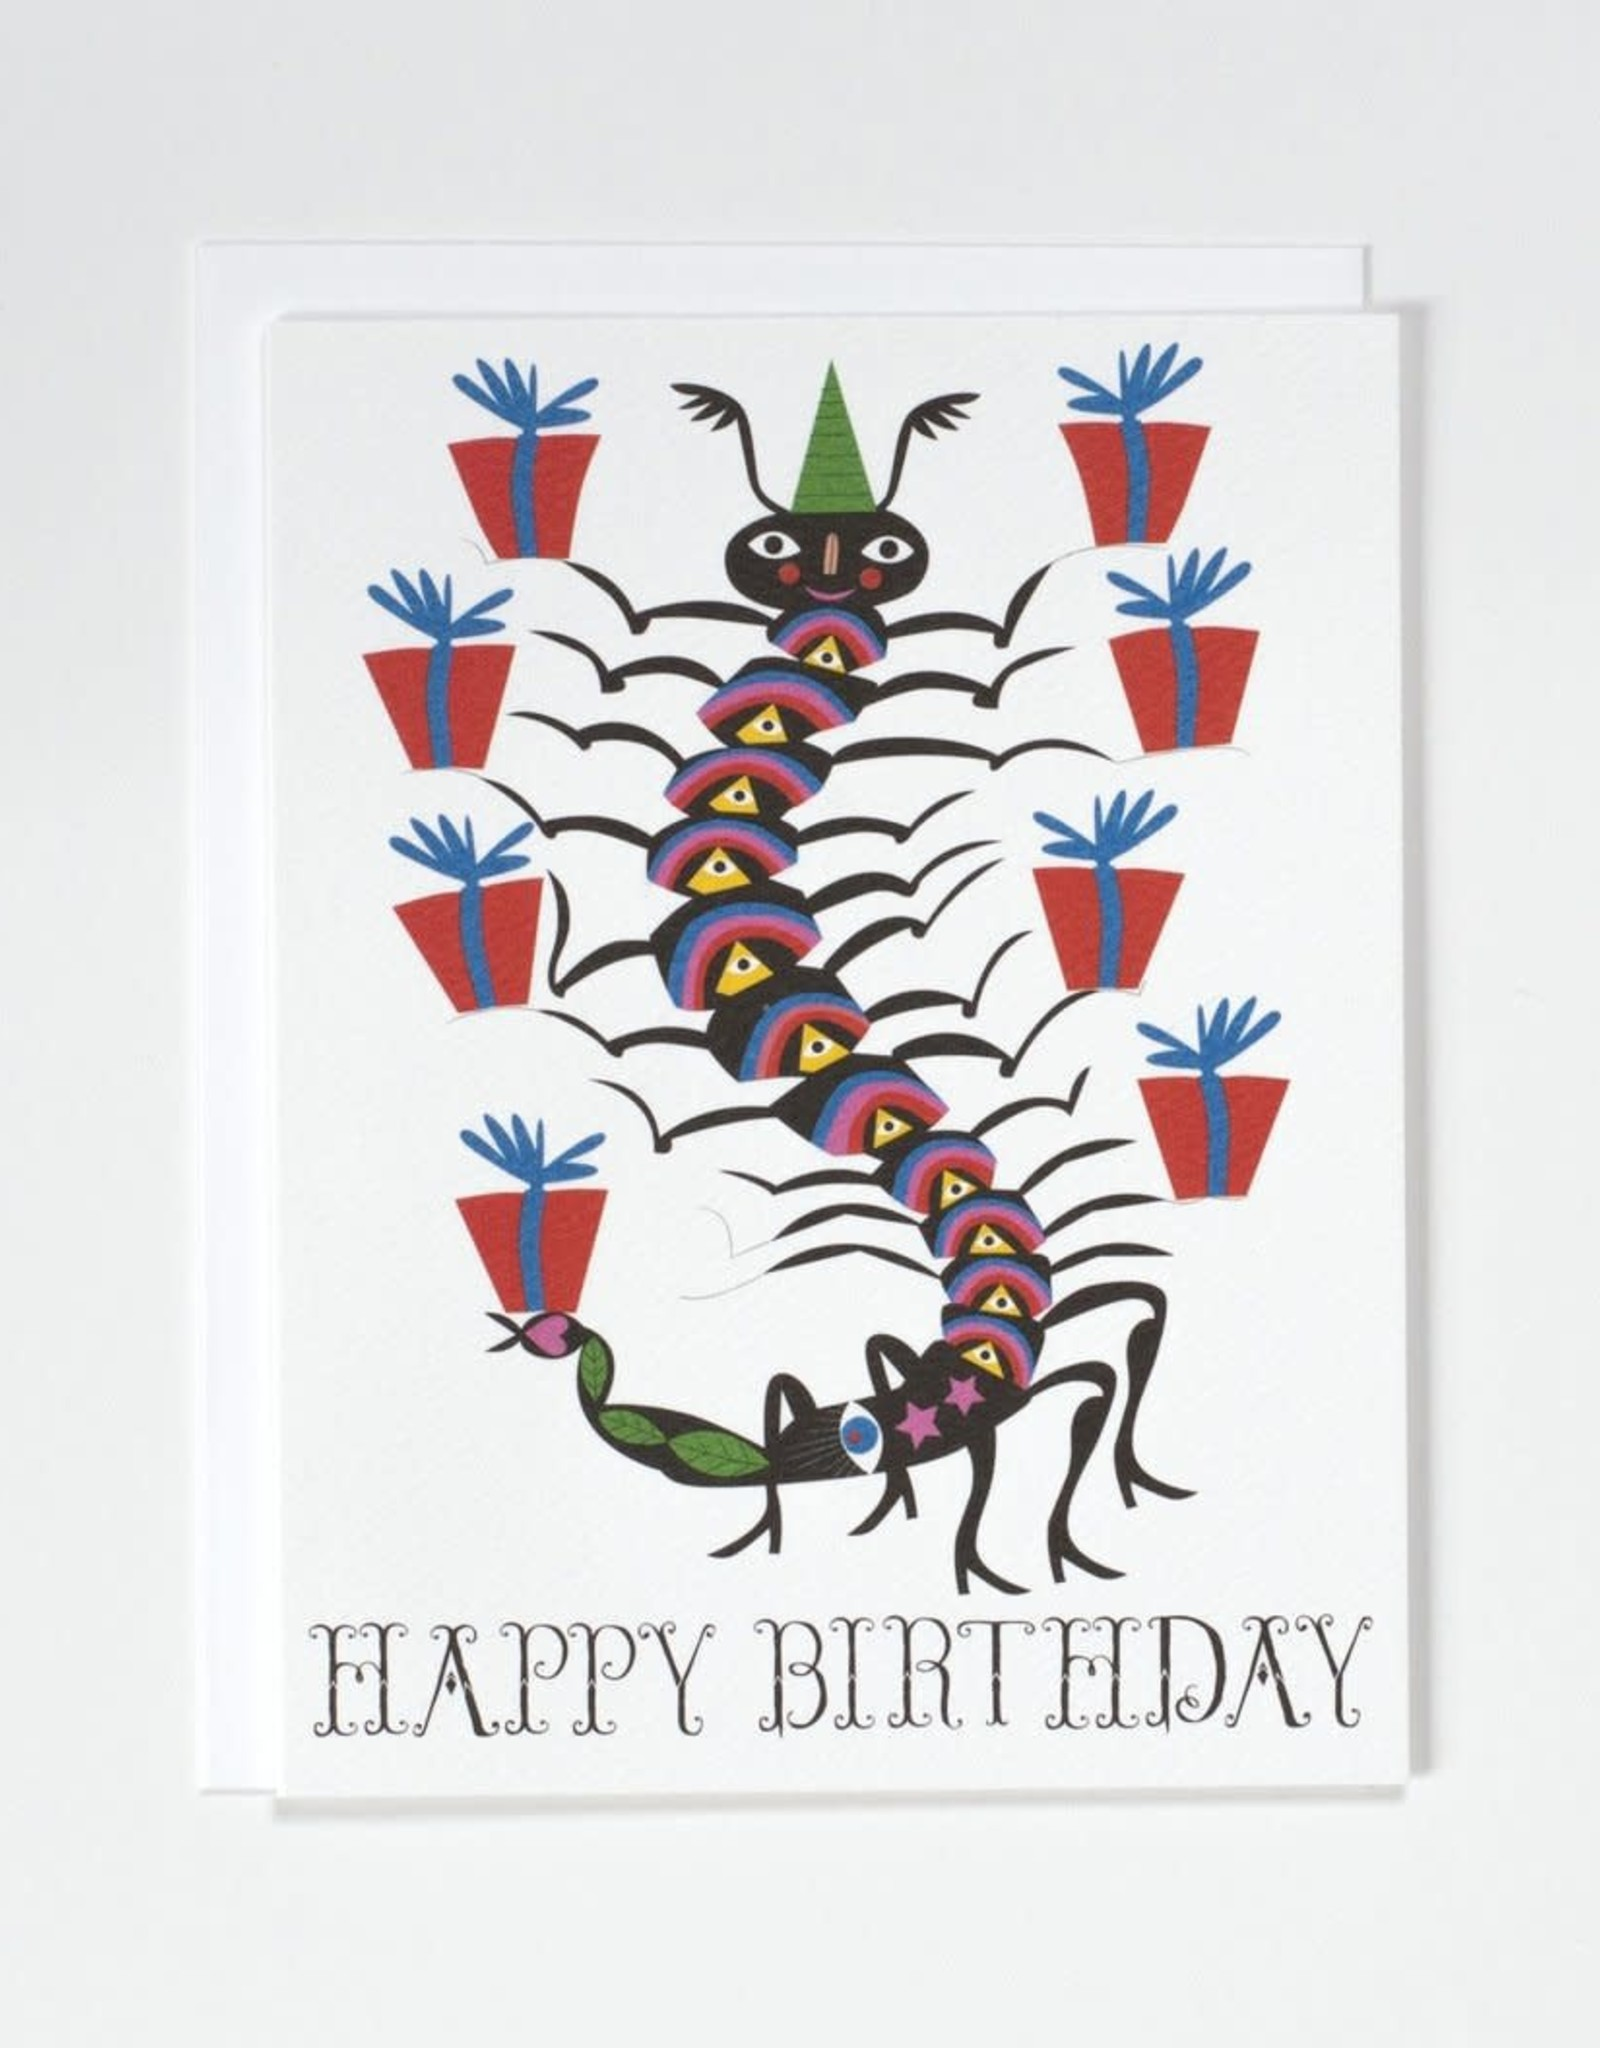 Banquet Atelier & Workshop Centipede Happy Birthday - Note Card